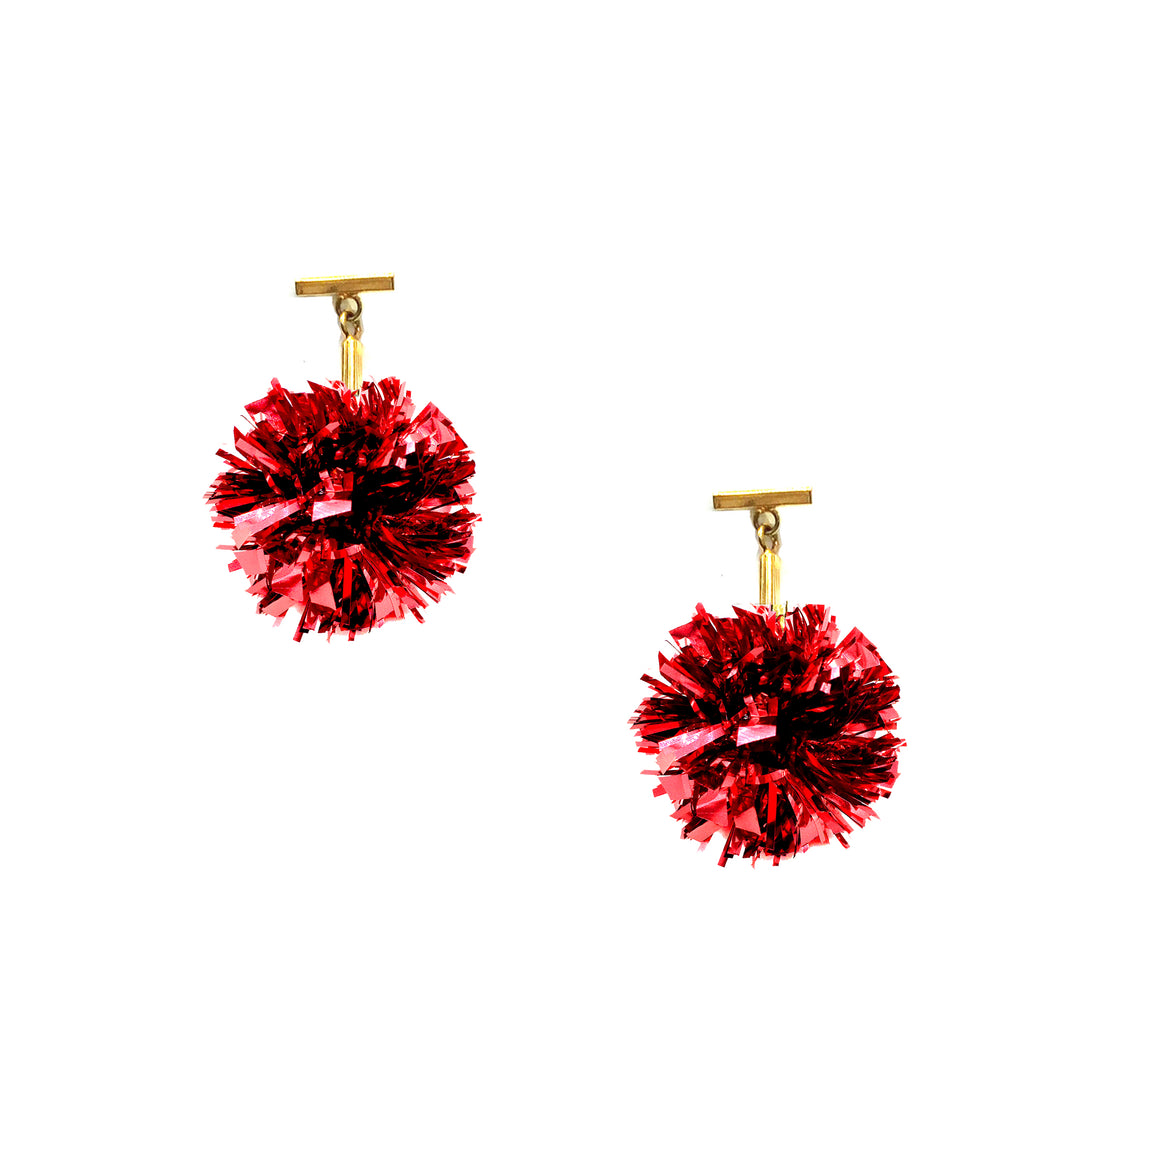 "Red 1"" Lurex Pom Pom T Stud Earrings, Earrings, Tuleste, Tuleste"